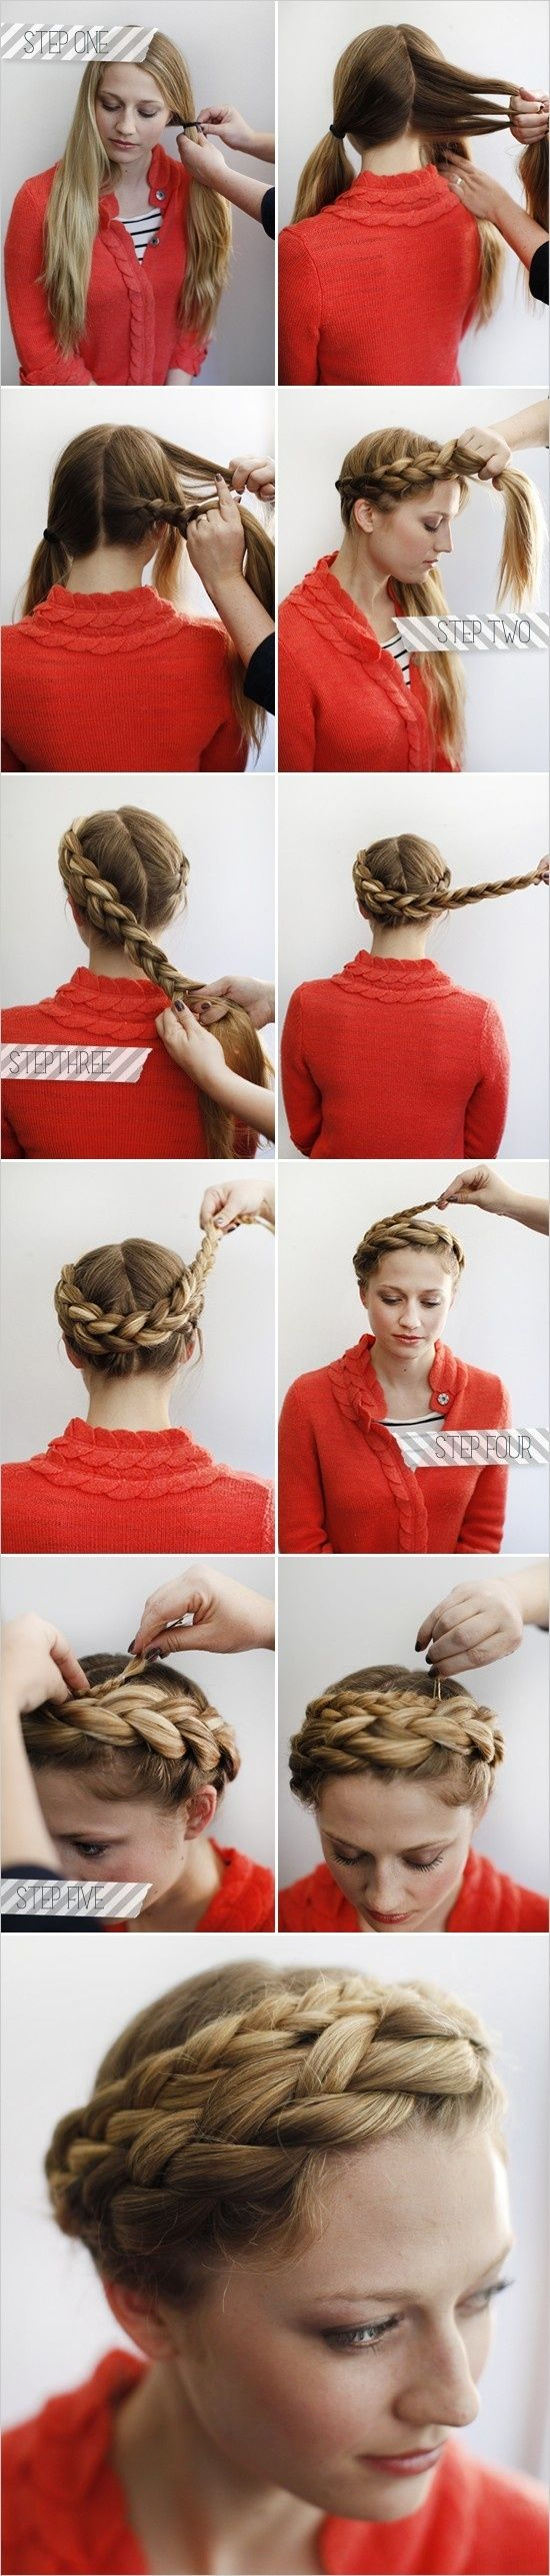 braid halo